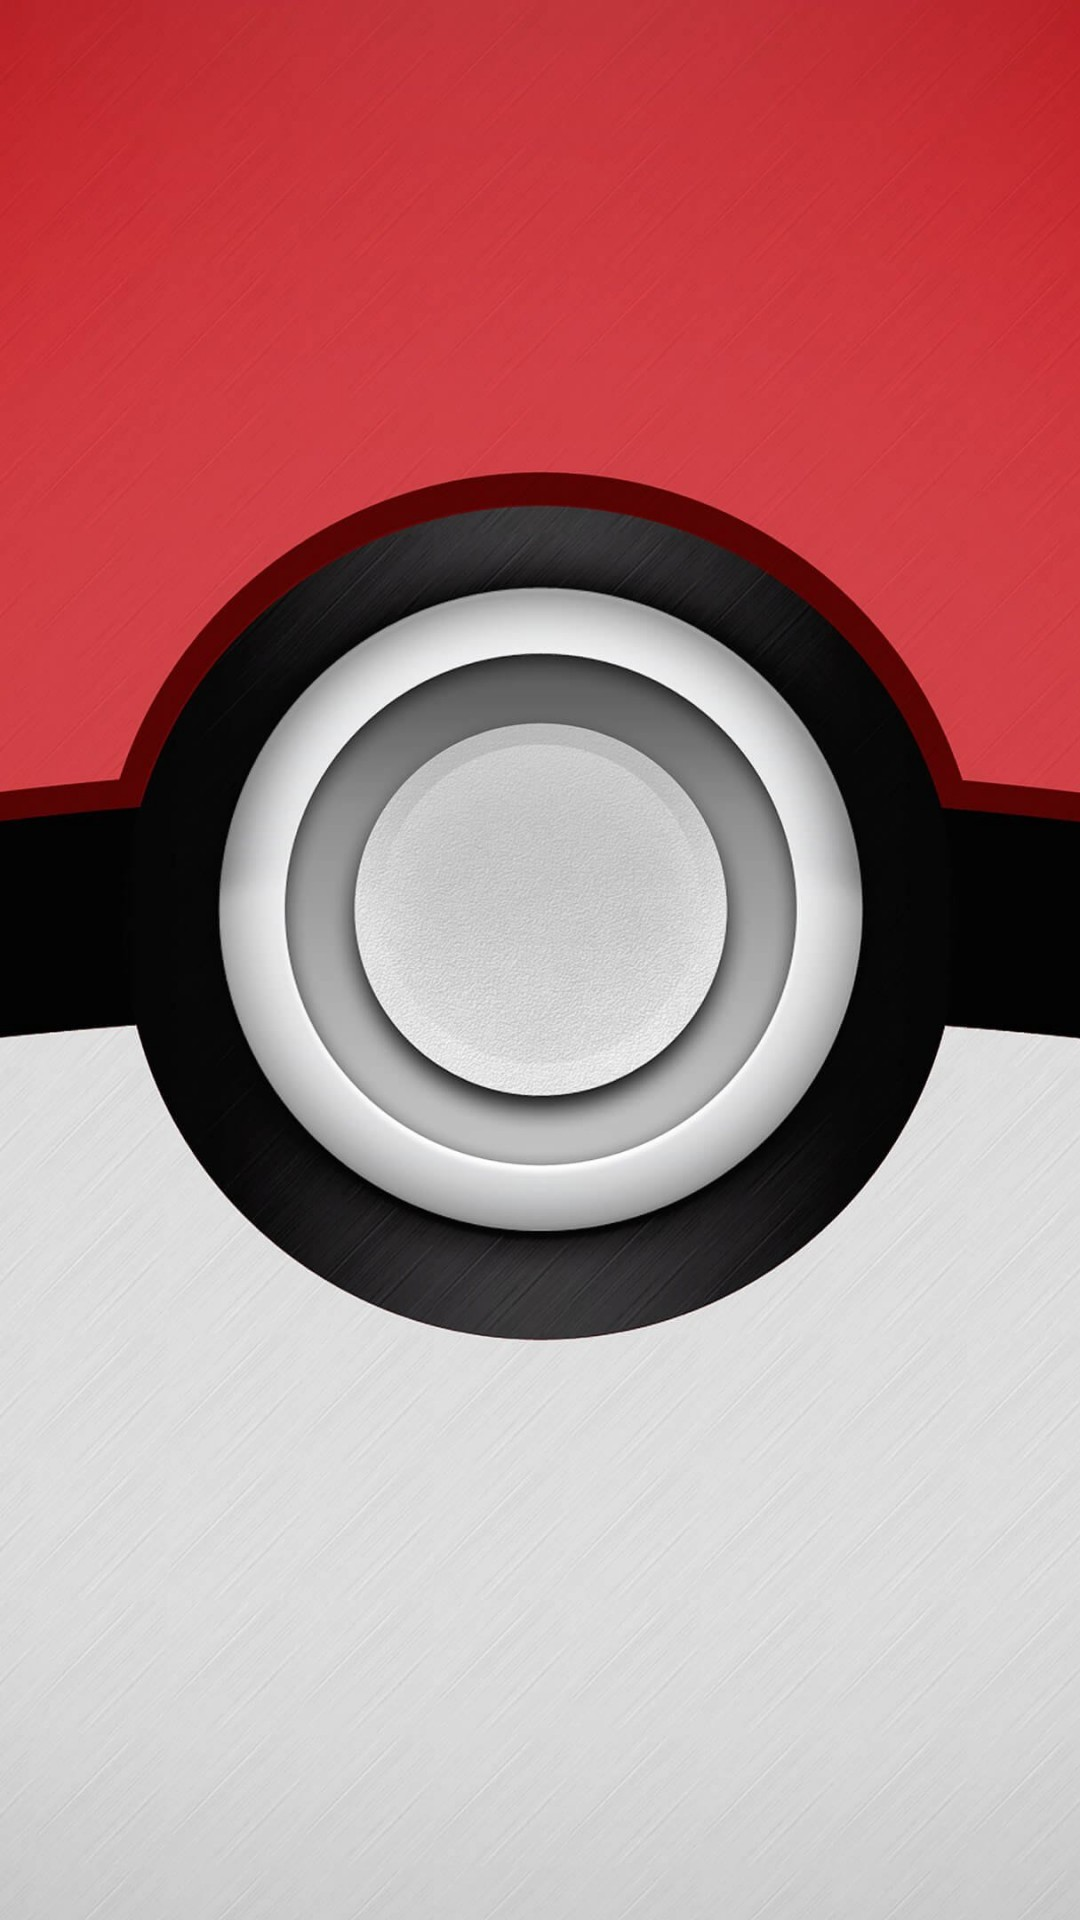 Pokeball Wallpaper for SAMSUNG Galaxy Note 3